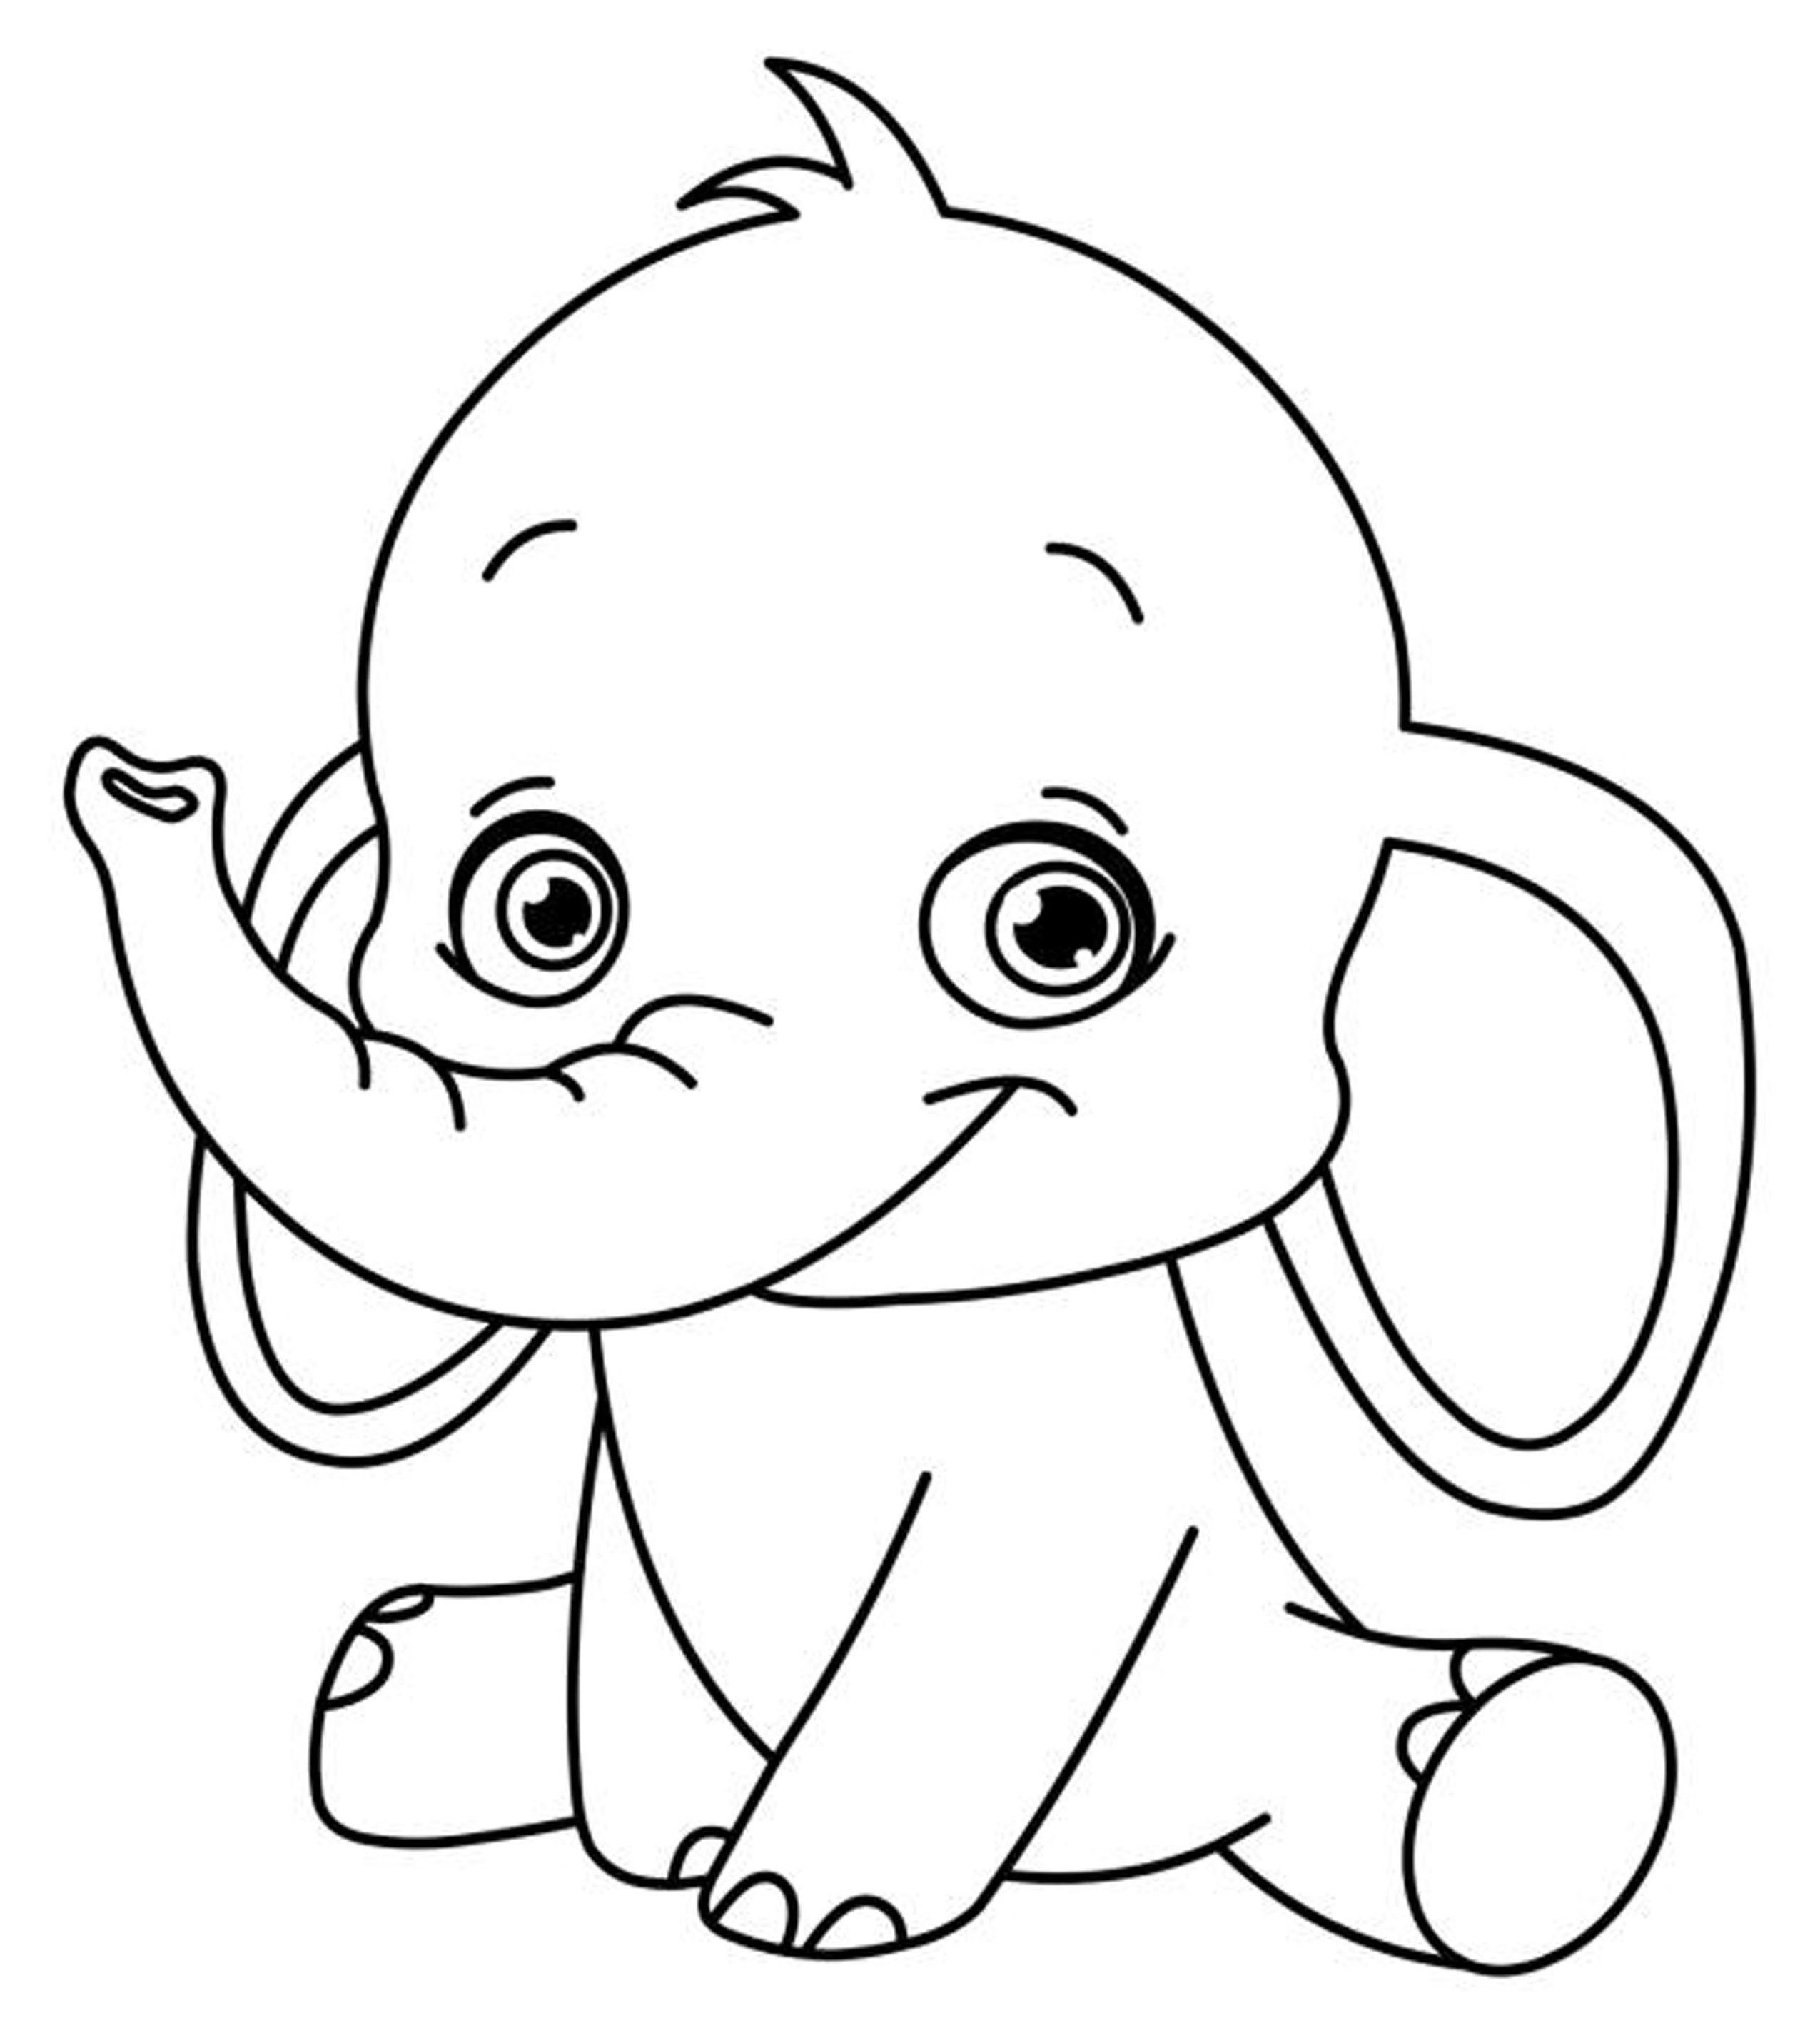 simple baby elephant coloring pages baby elephant coloring pages to download and print for free simple coloring baby pages elephant